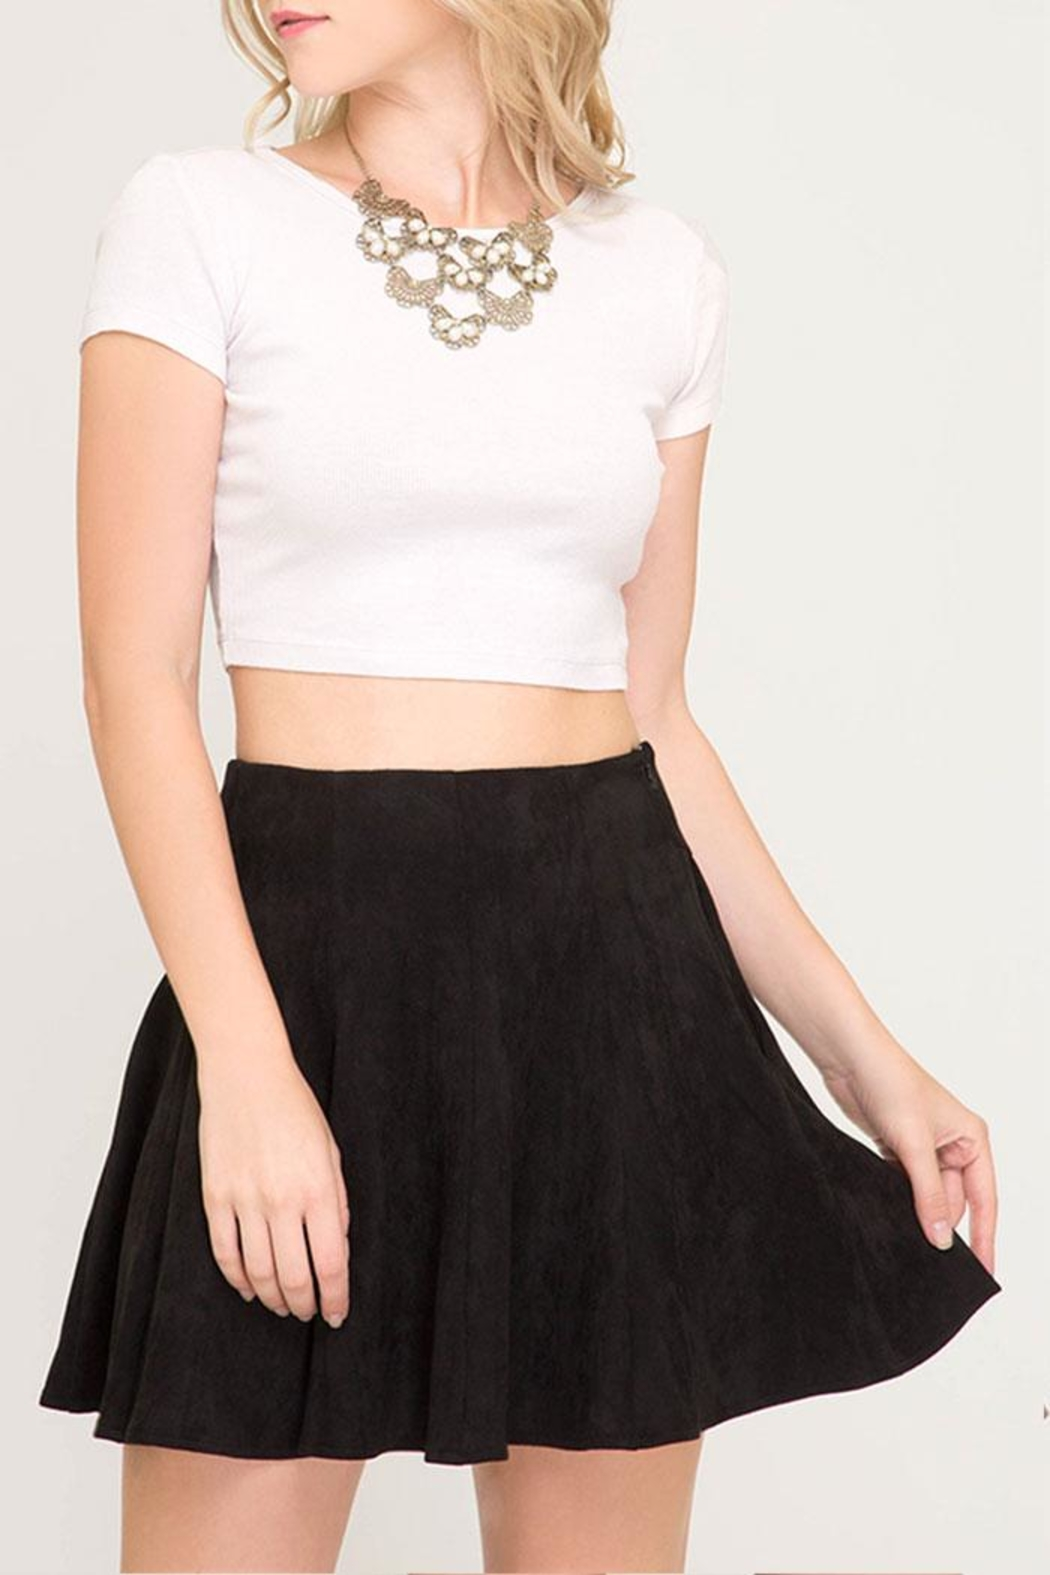 She + Sky Faux Suede Flare-Skirt - Main Image